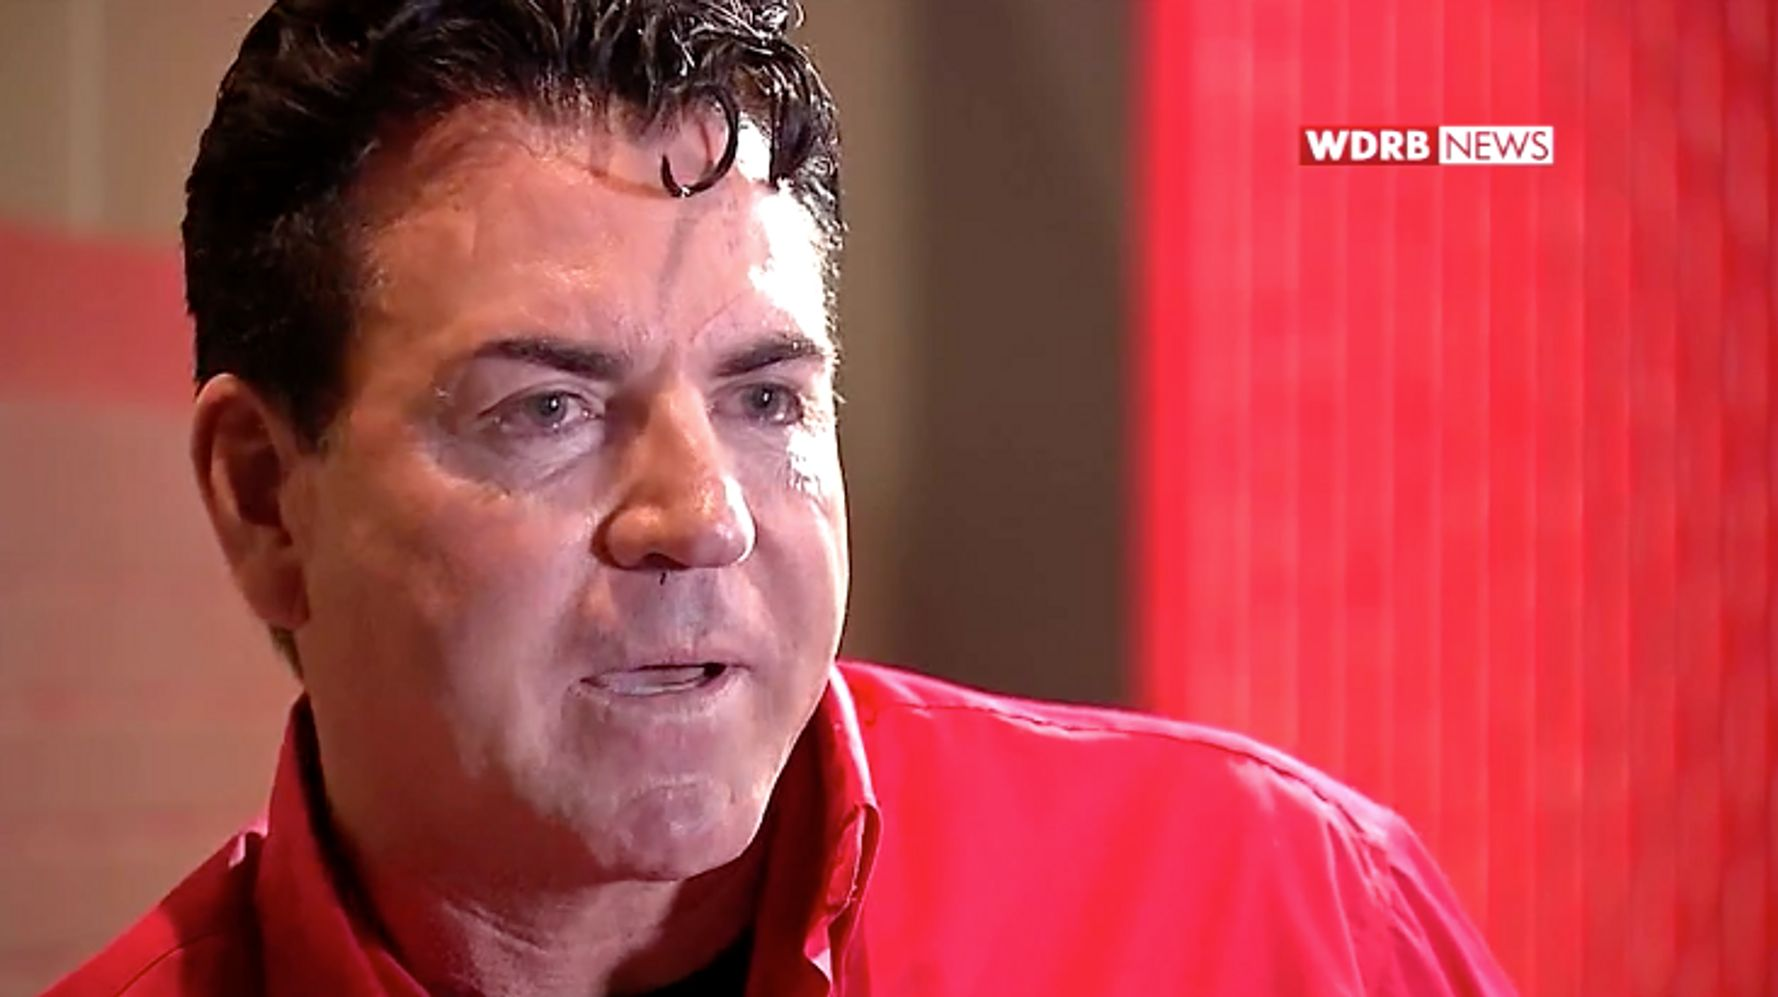 Westlake Legal Group 5e44b93021000053002692cc Papa John's Founder Reveals The Truth: He Didn't Really Eat 40 Pizzas In 30 Days